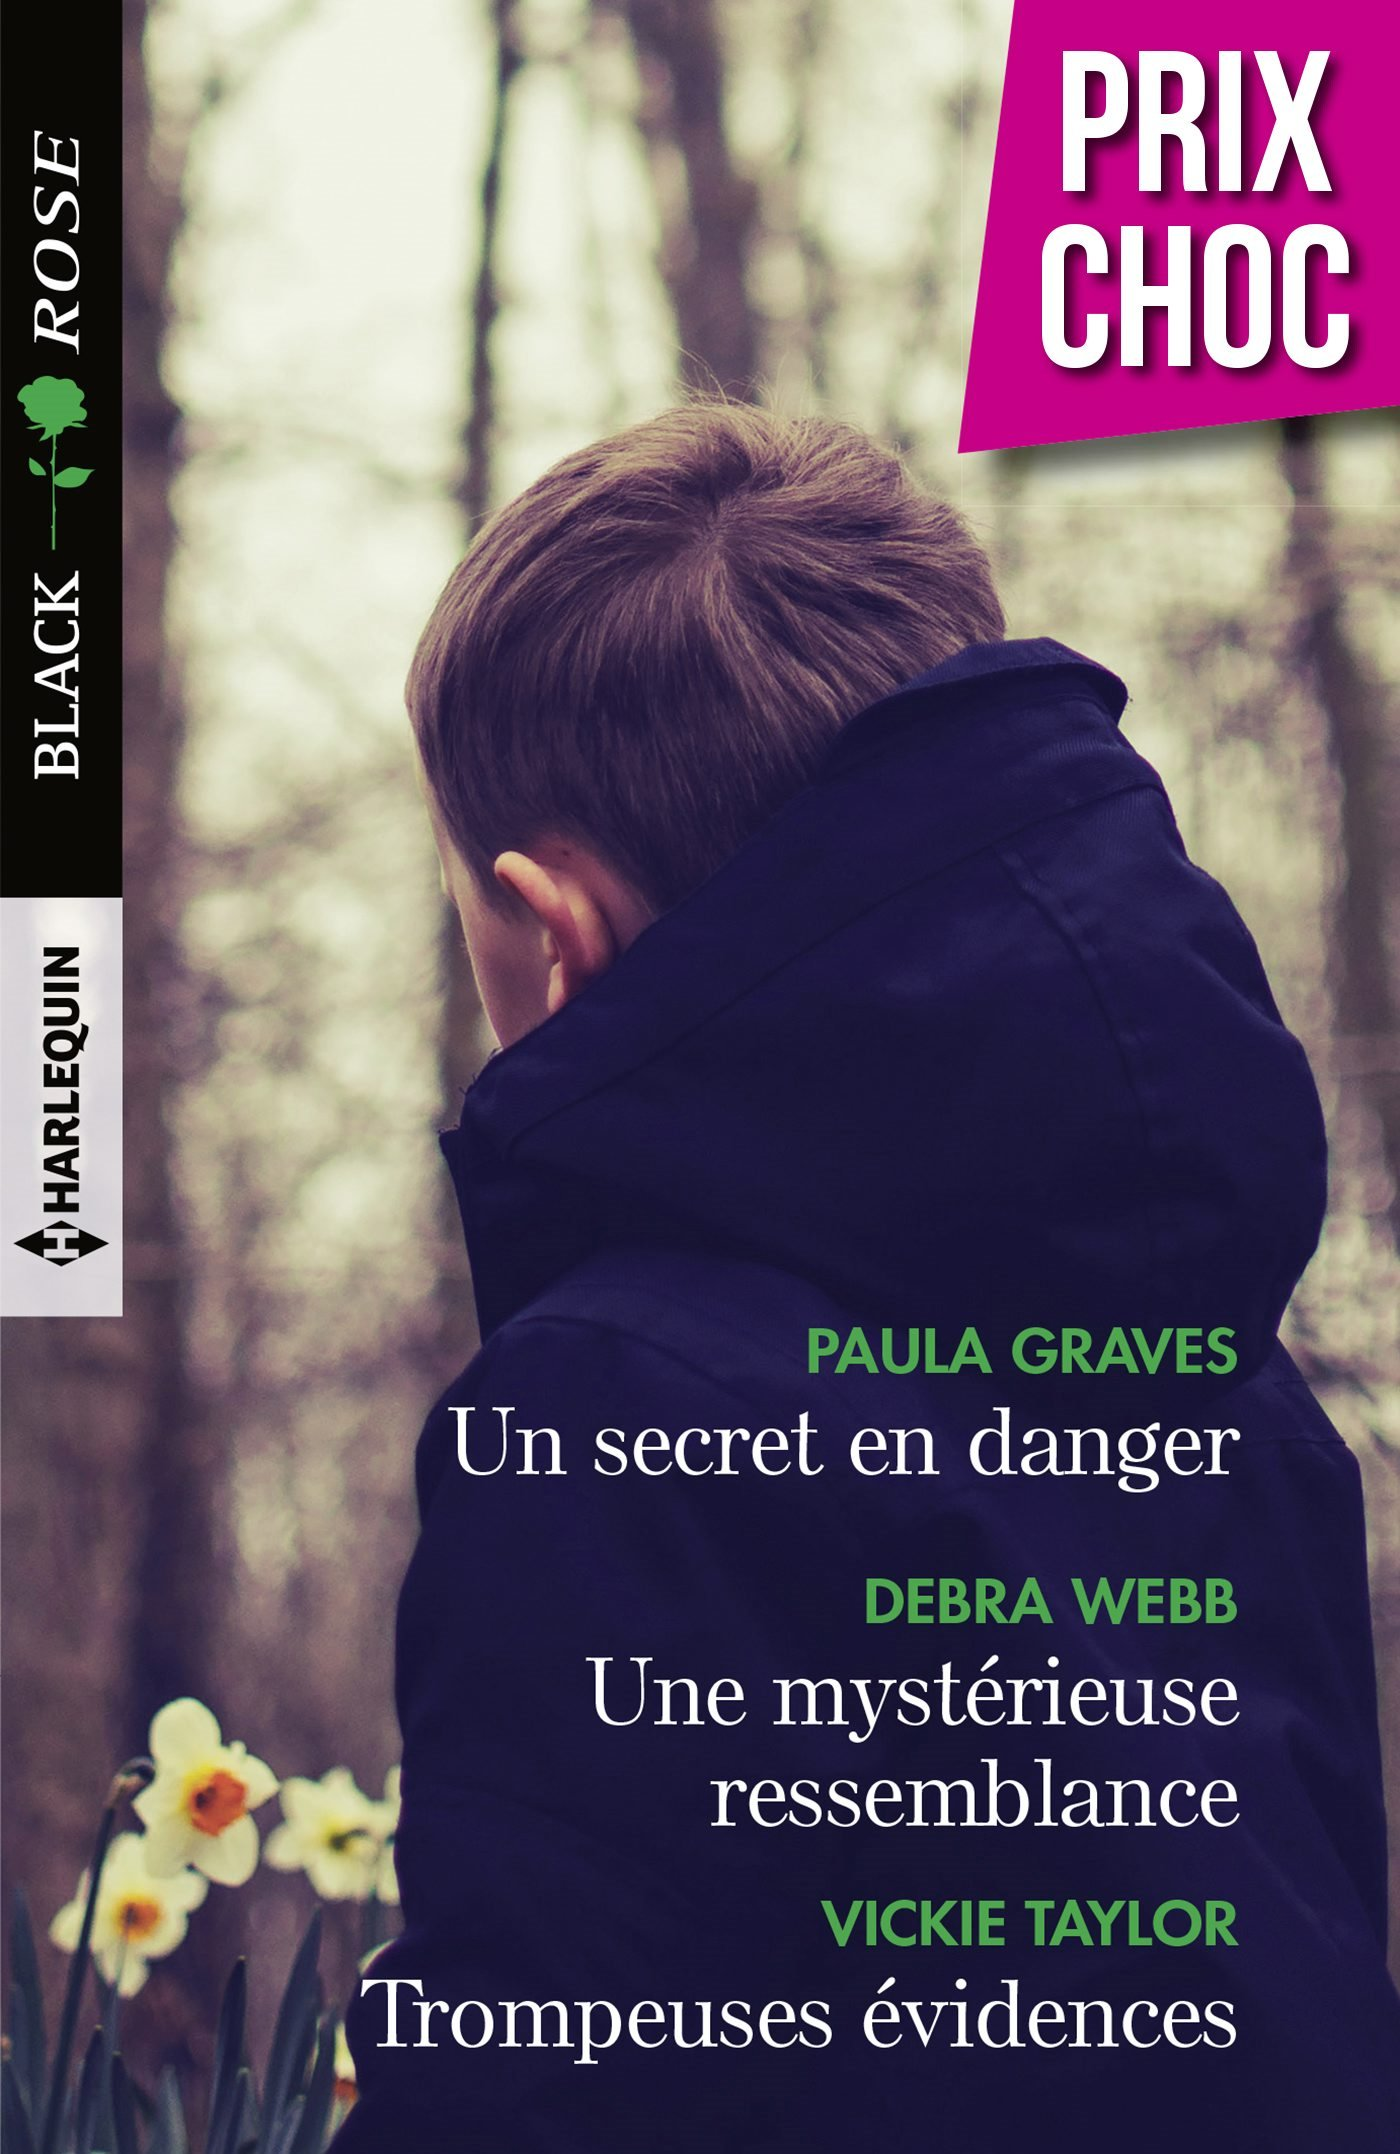 Couverture : Paula Graves, Un secret en danger, Harlequin